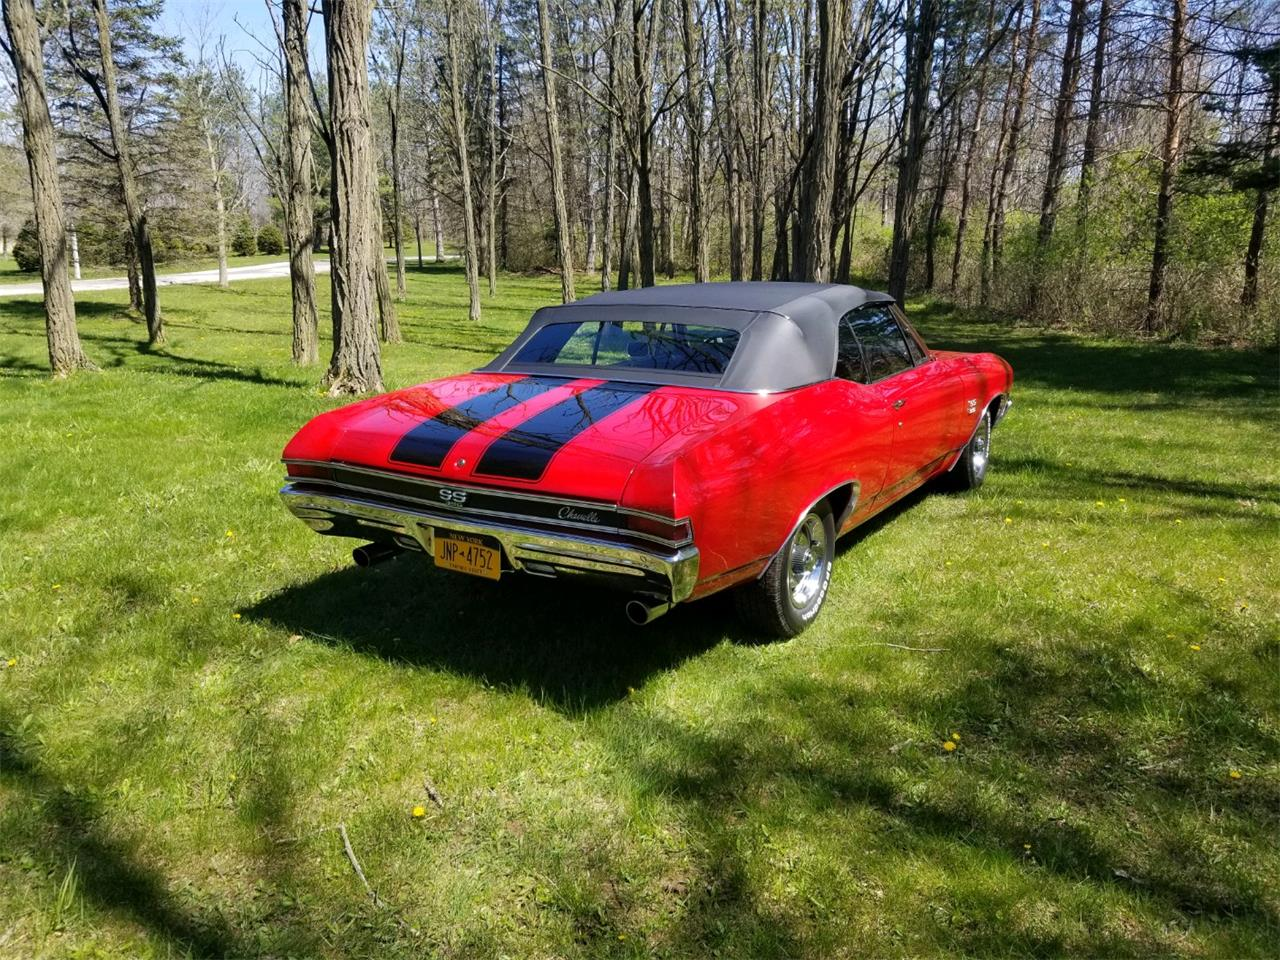 1968 Chevrolet Chevelle SS (CC-1355764) for sale in Honeoye Falls, New York